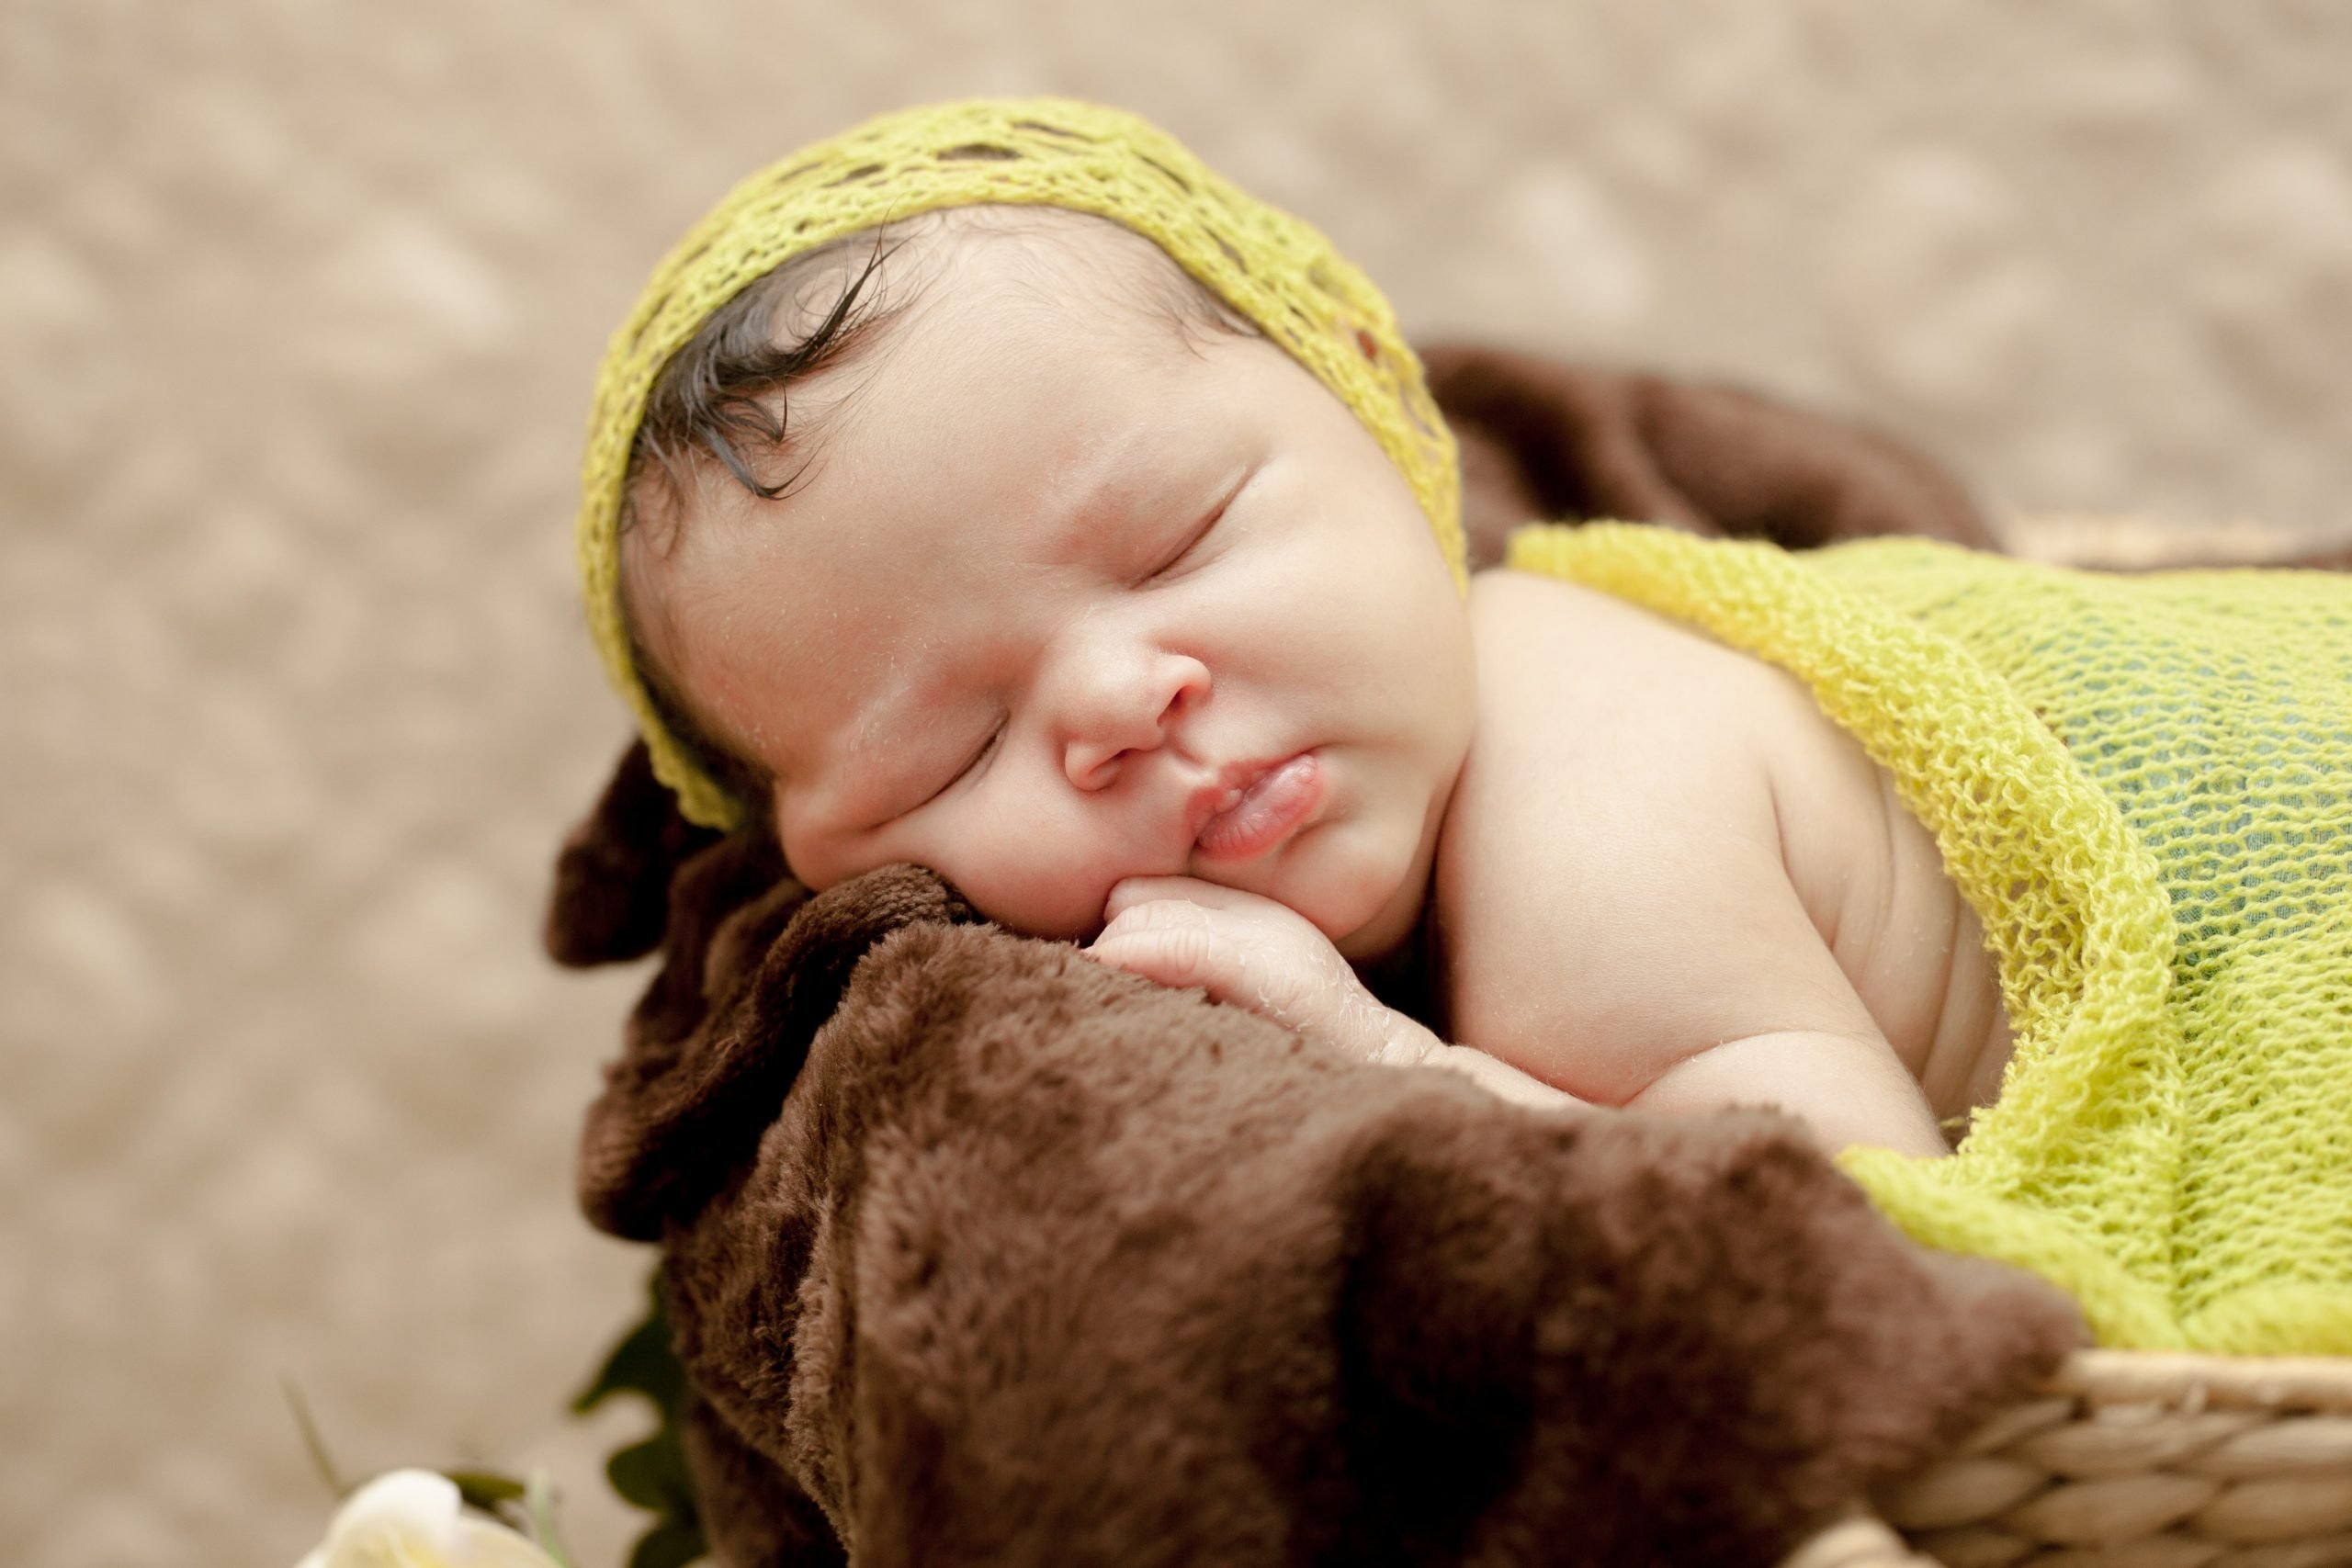 Newborn photoshoot with Baby C, Tania Miller Photography, Cwmbran Newborn Photographer